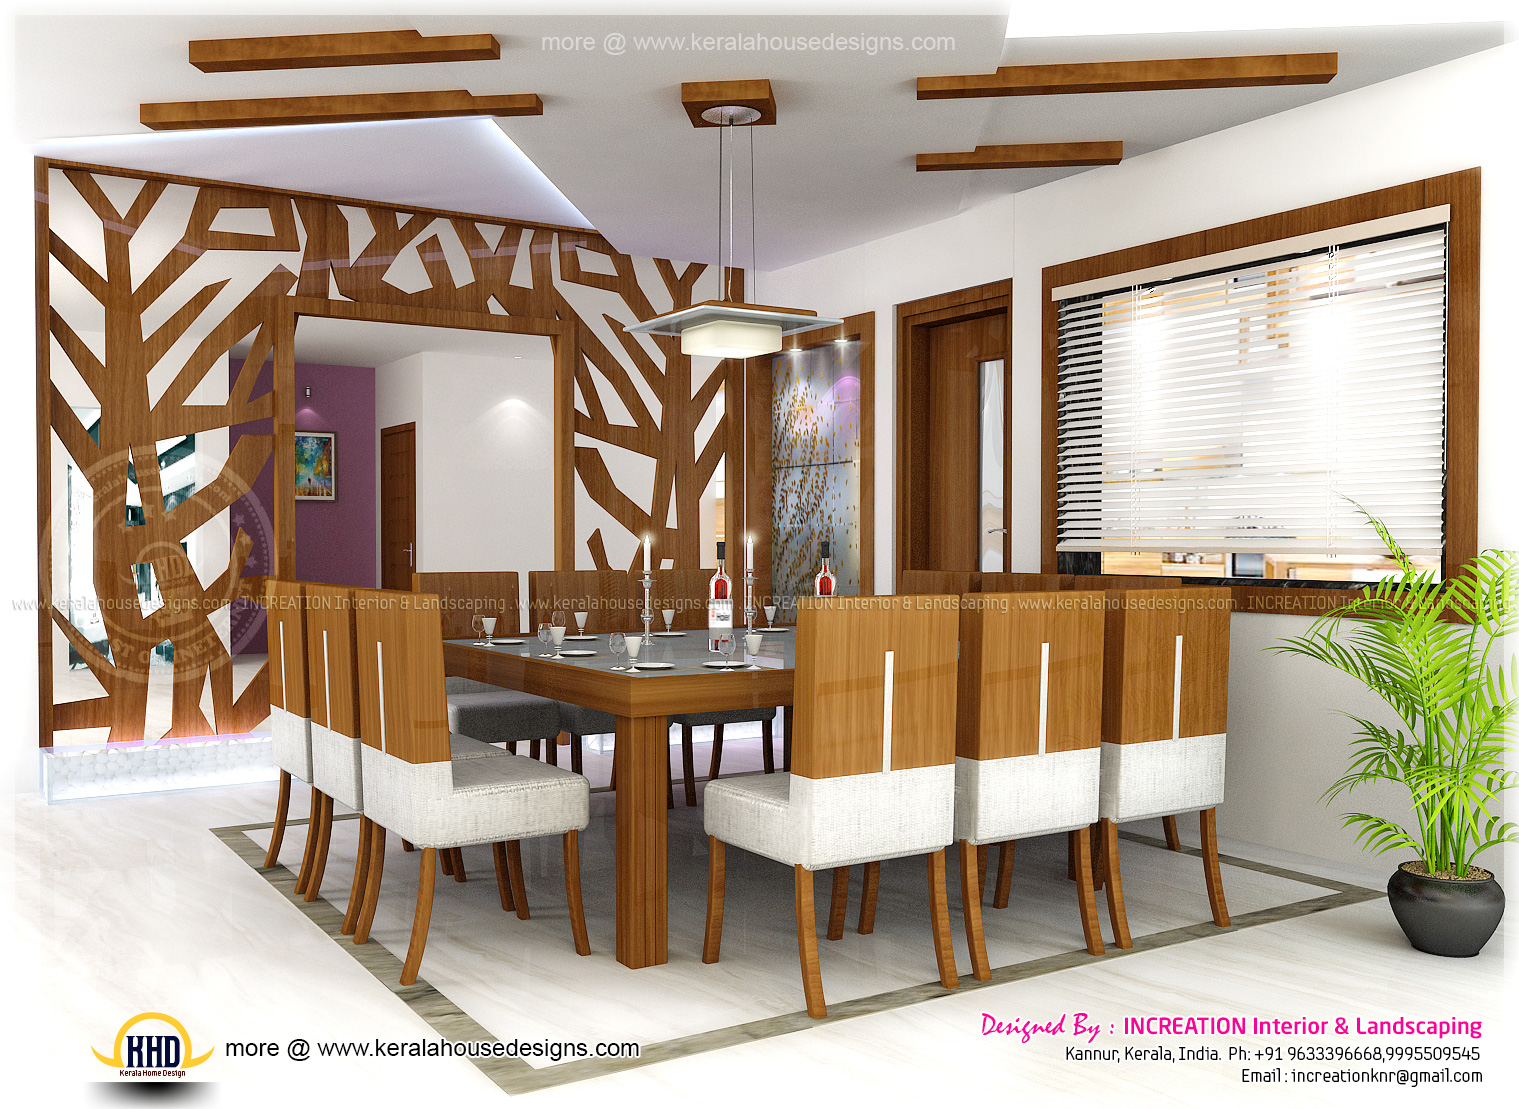 Interior designs from kannur kerala kerala home design and floor plans Interior design ideas for kerala houses